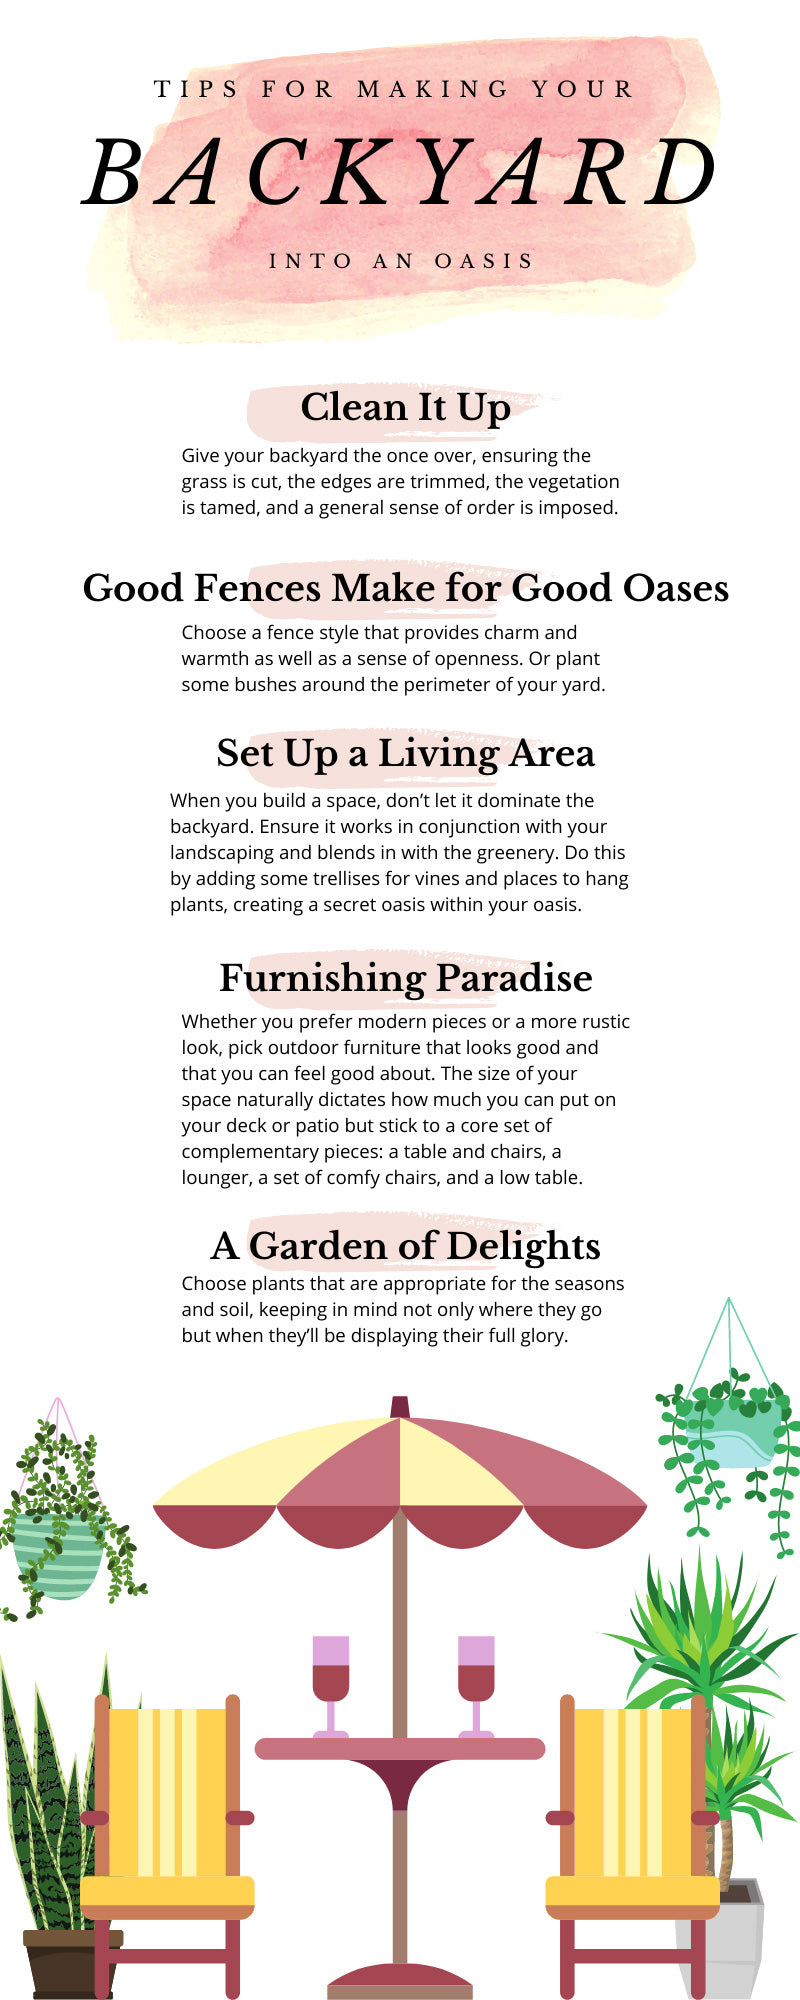 Tips for Making Your Backyard Into an Oasis